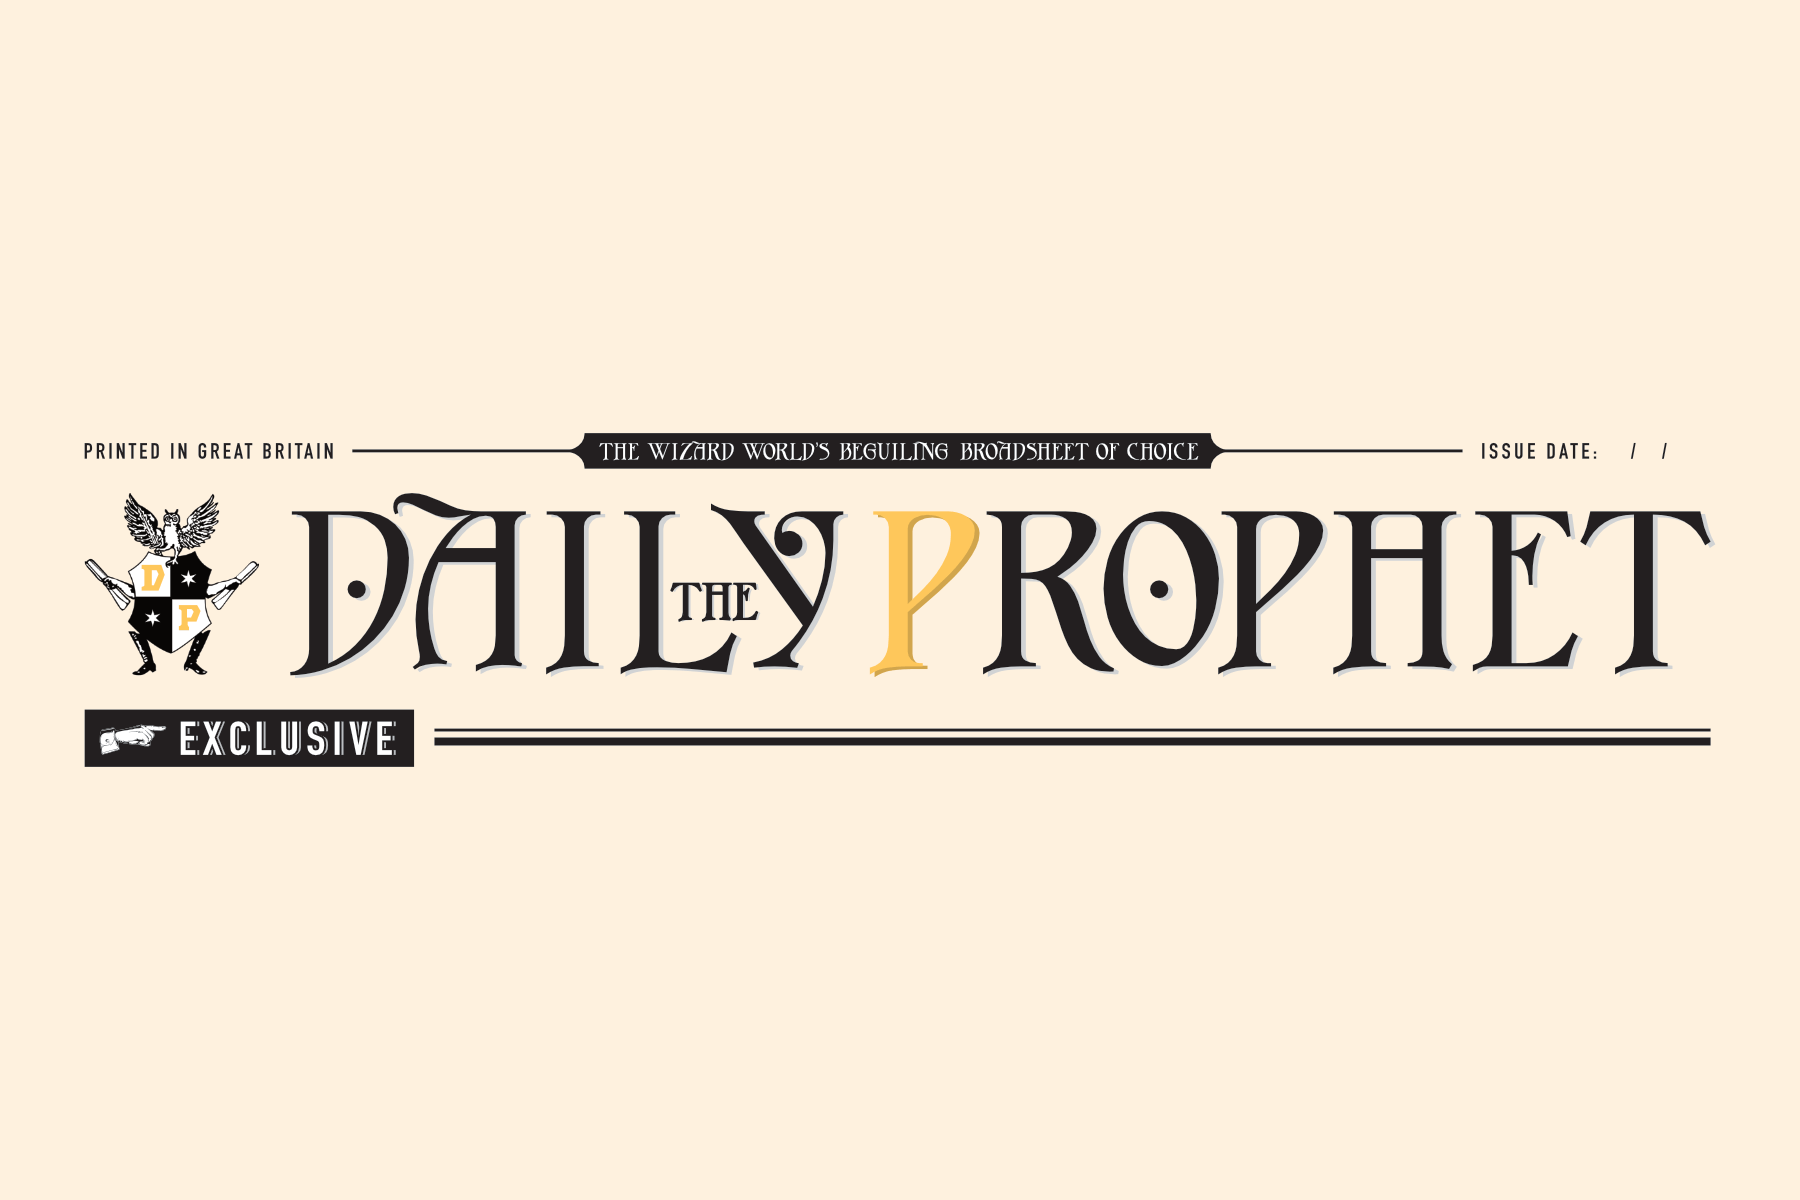 image regarding Daily Prophet Printable titled Harry Potter Newspaper Templates - PAPERZIP